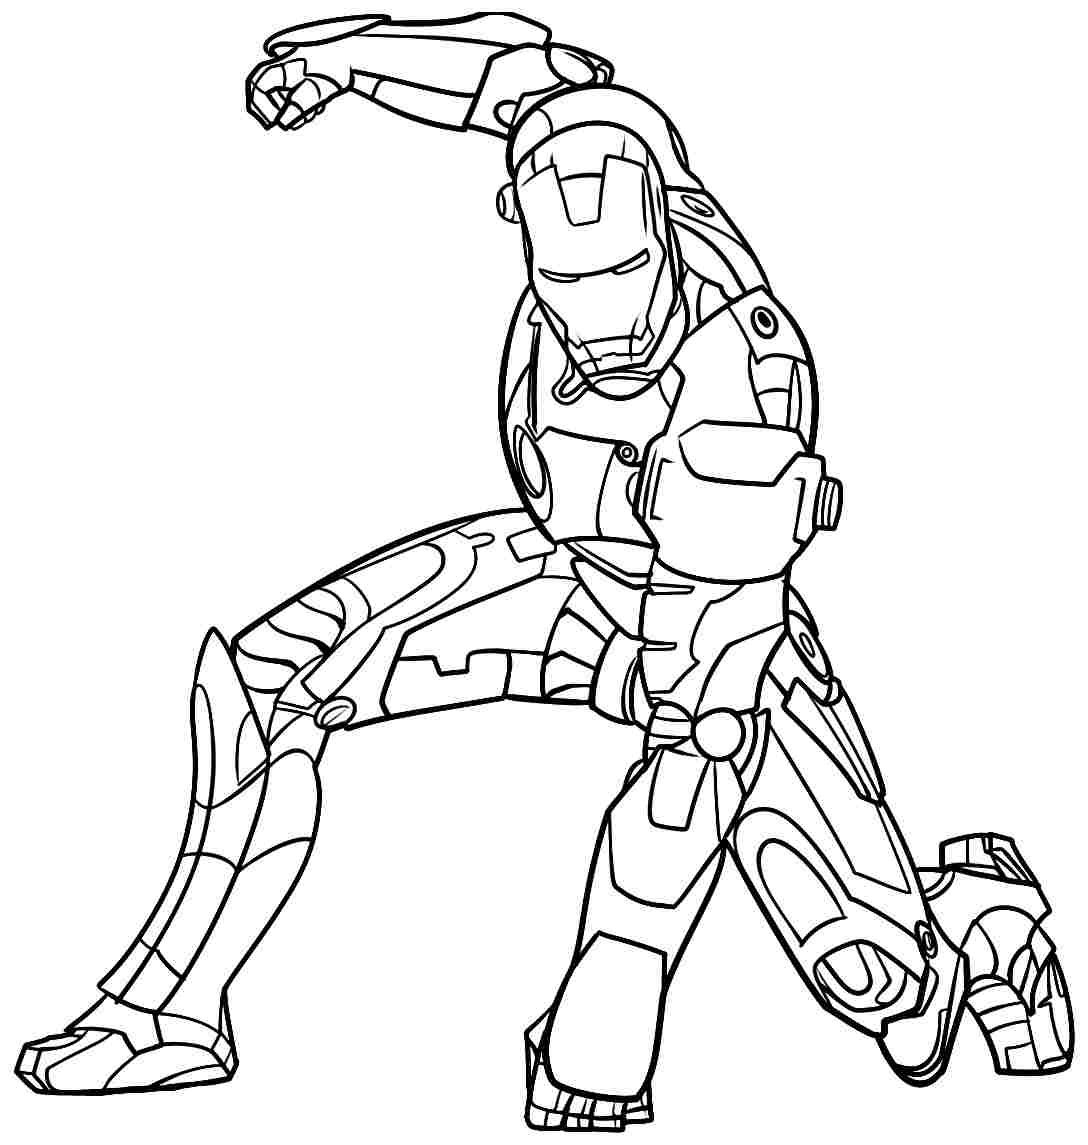 1088x1145 Iron Man Coloring Pages Printable Coloring Pages Superhero Ironman